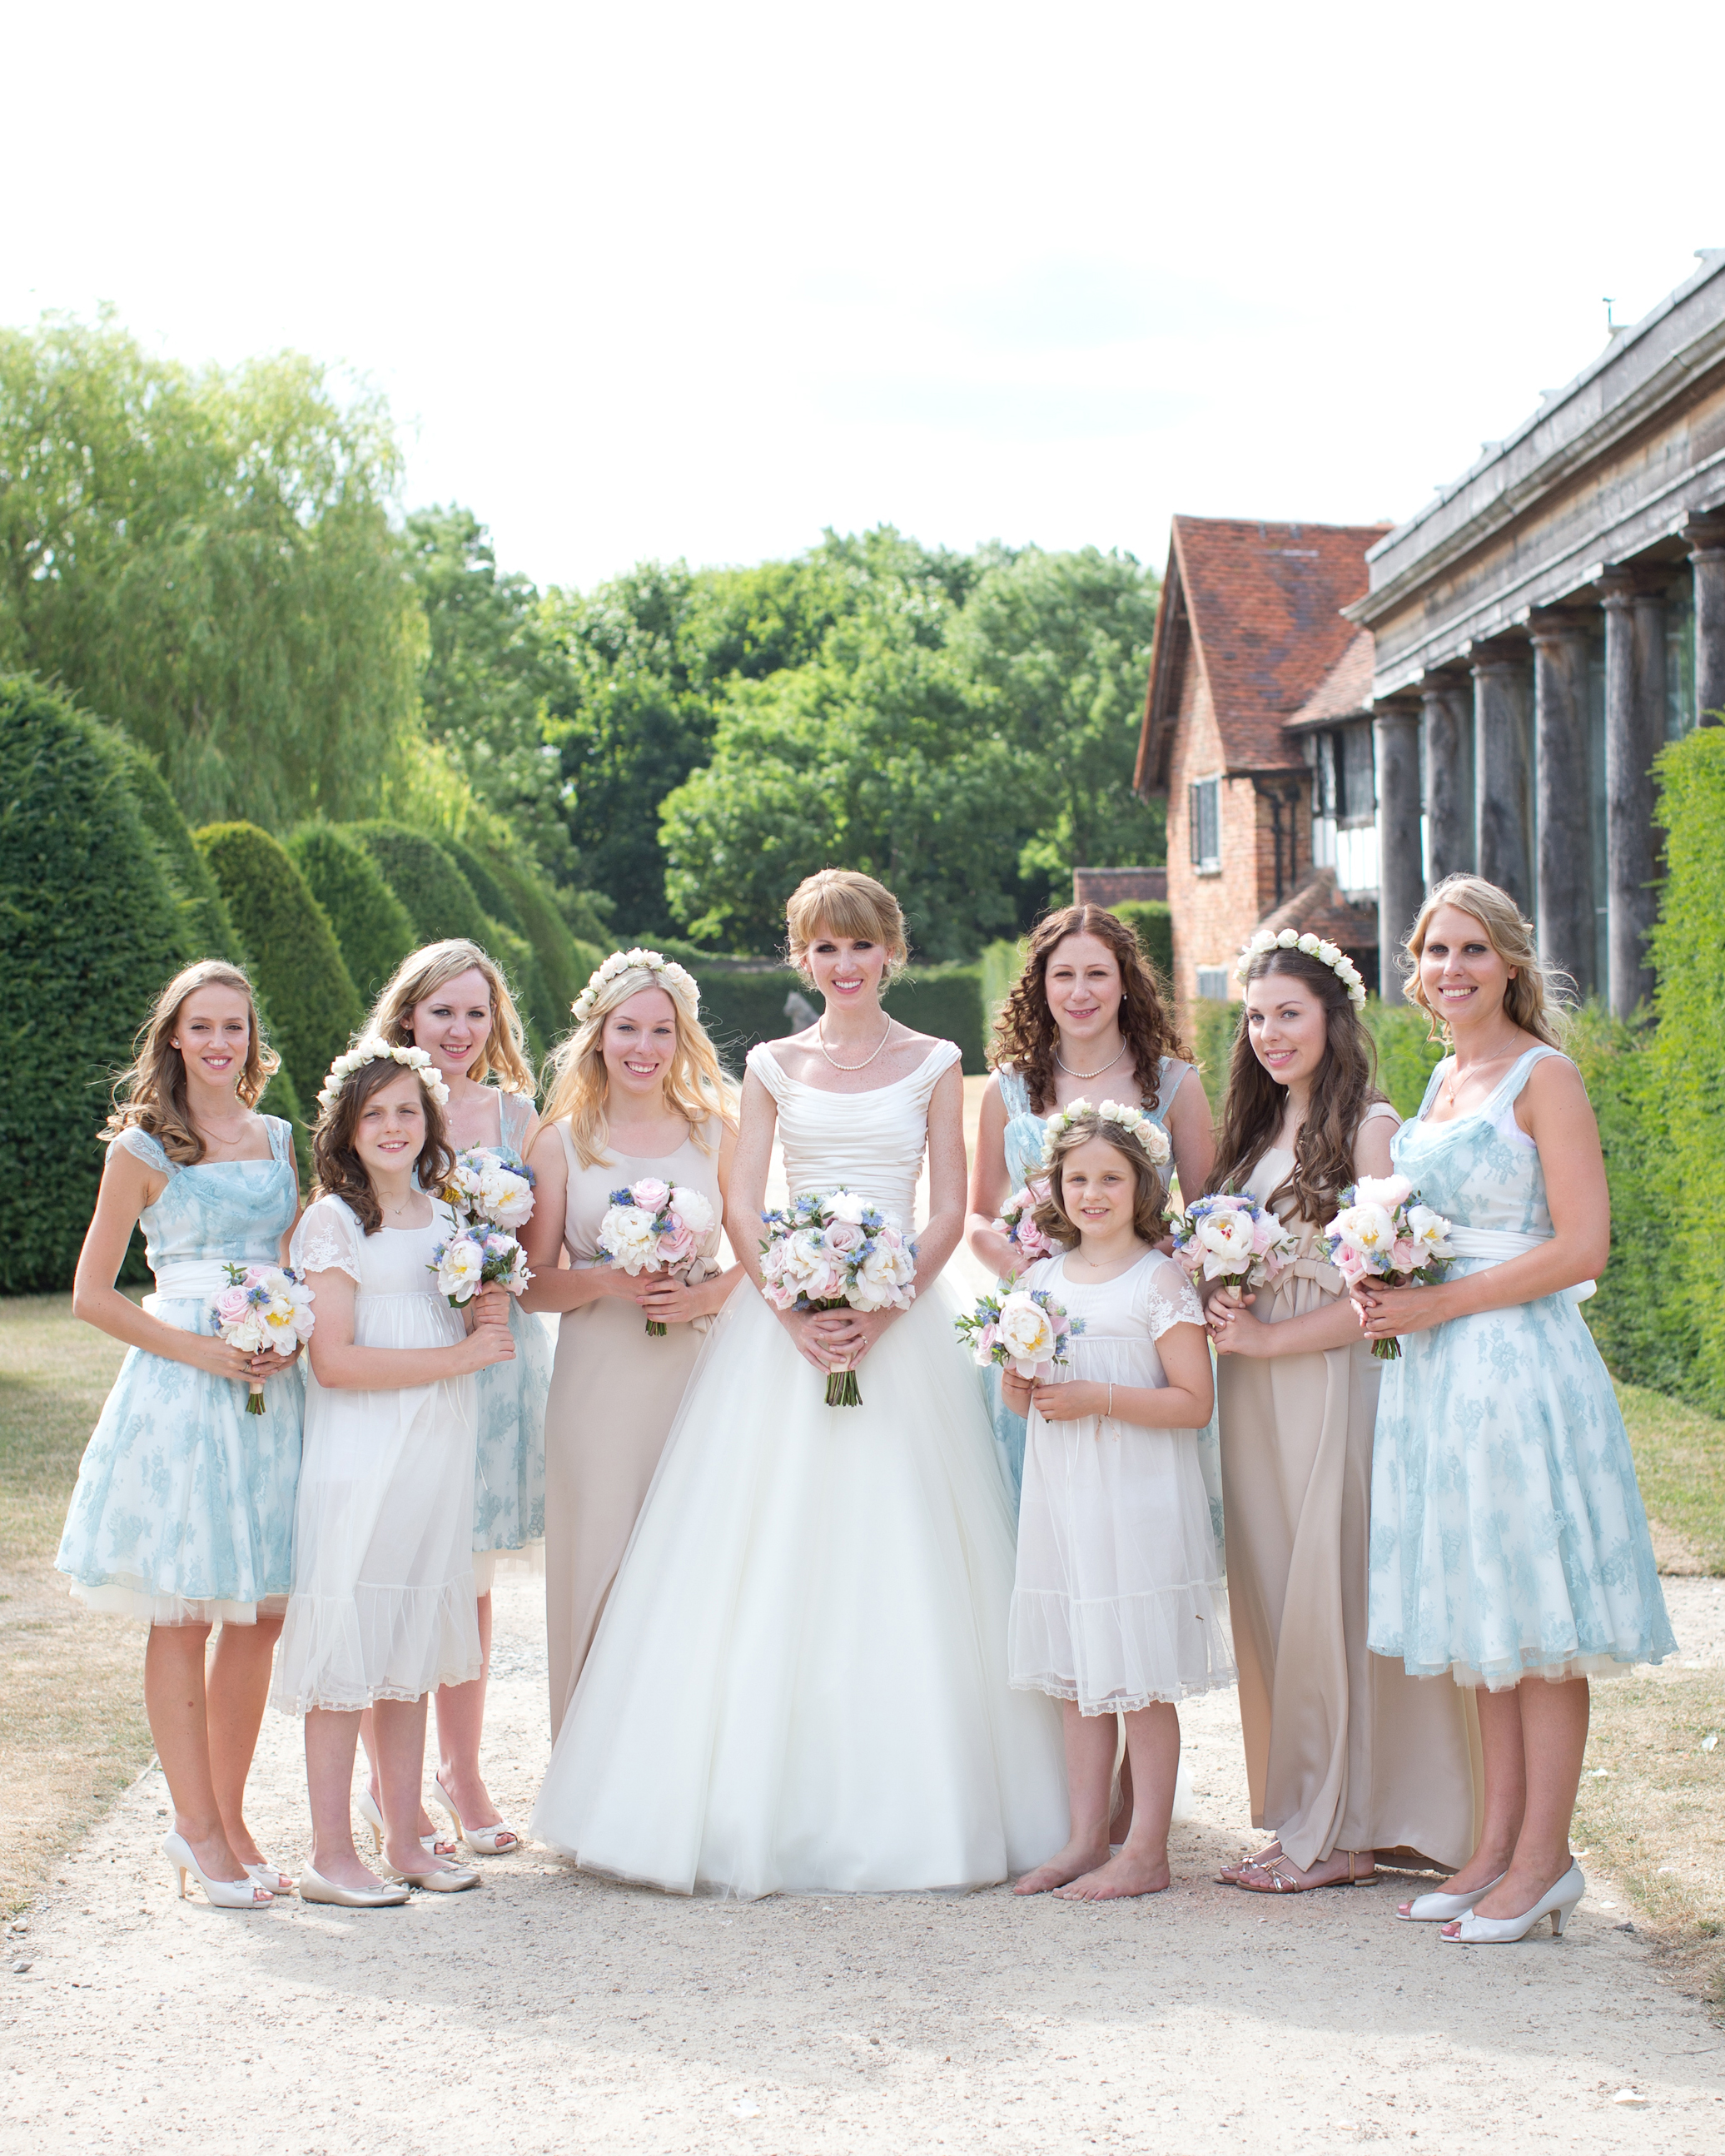 hayley-andrew-wedding-bridesmaids-0714.jpg